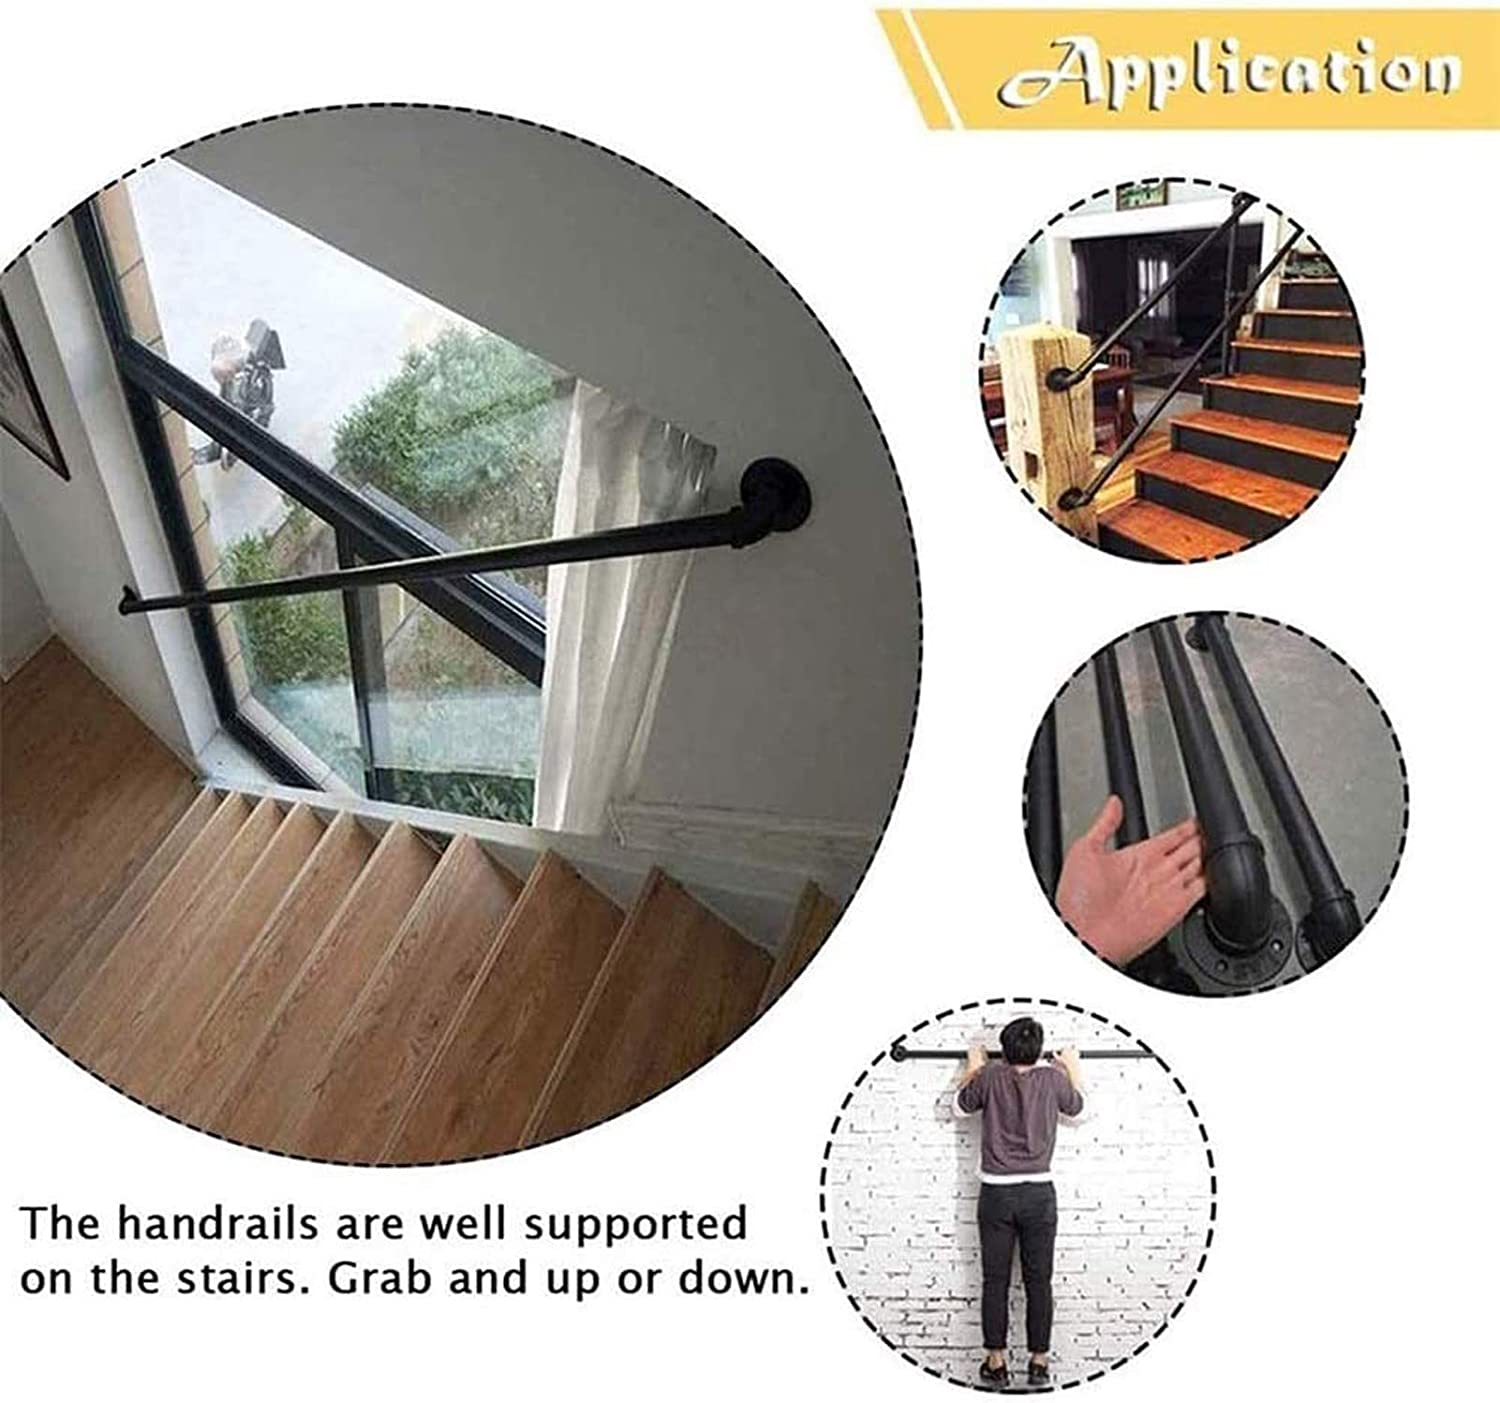 ZYUN Stair Handrail Industrial Wind Wrought Iron Stair Handrail Home Indoor Loft Against The Wall Old Non-Slip Kindergarten Handle,1ft